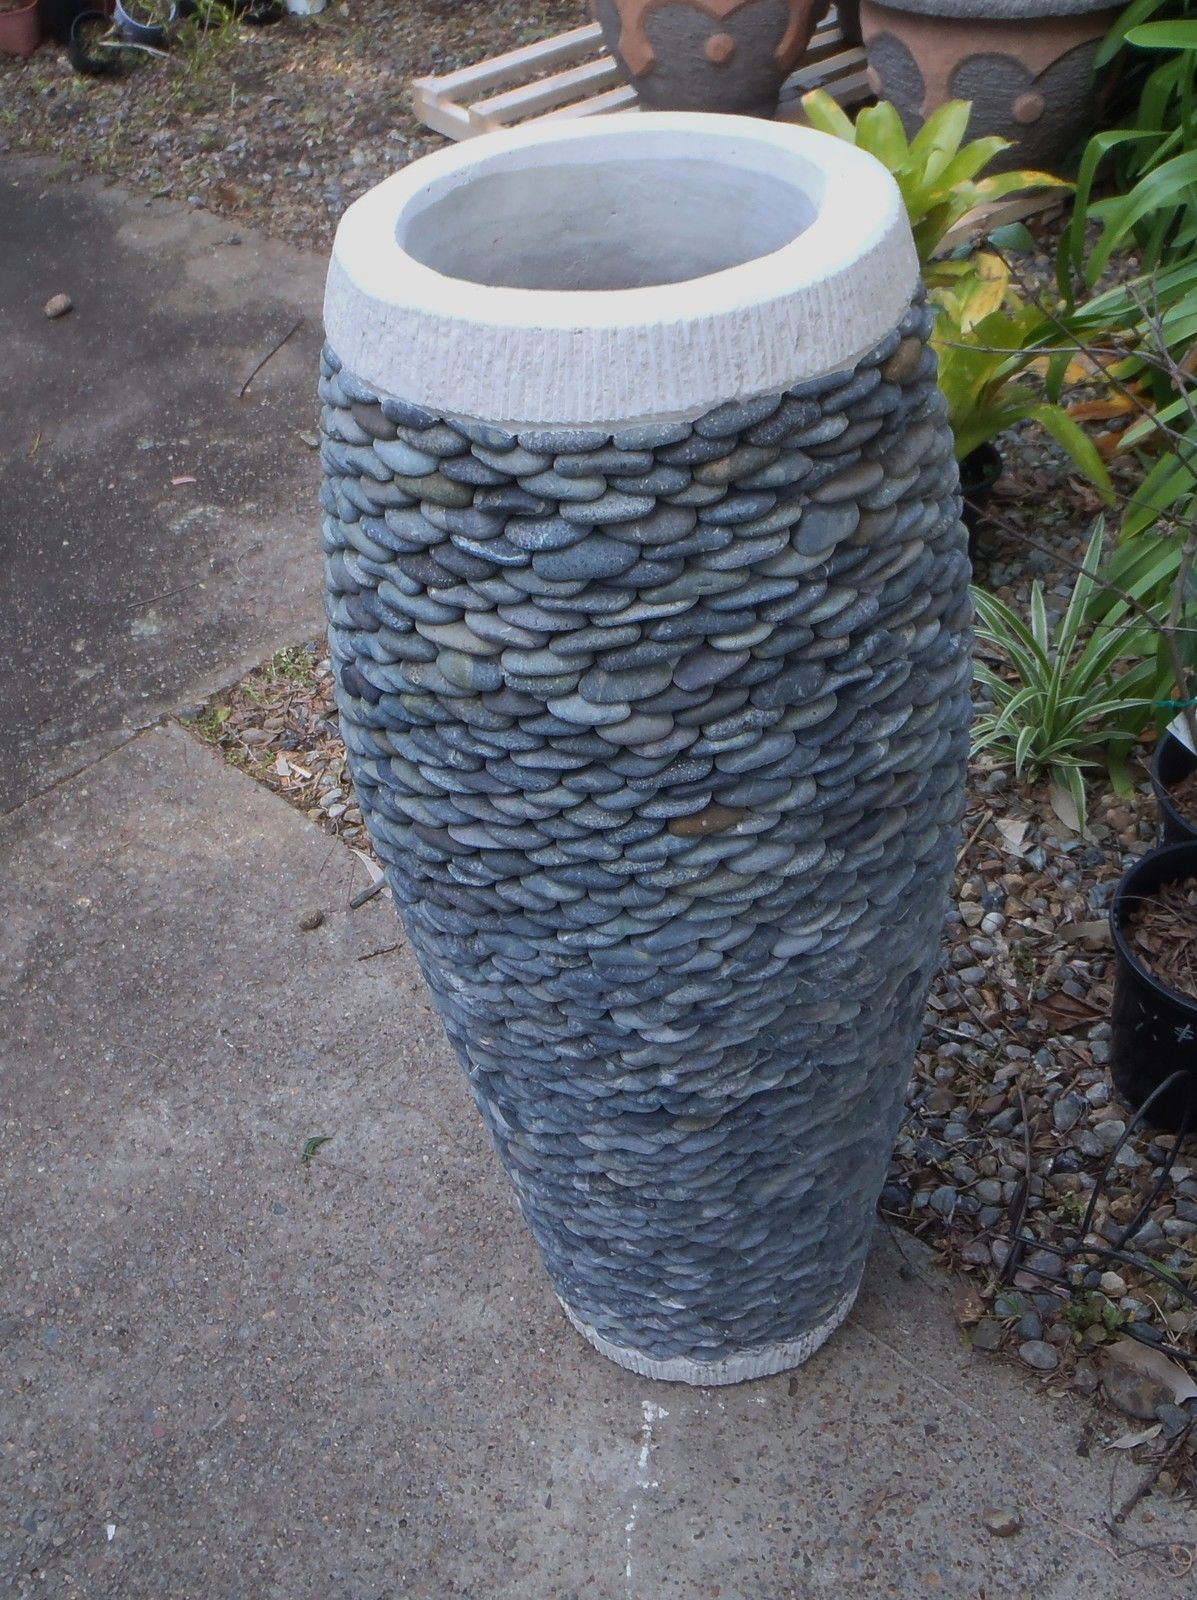 Balinese Unique River Stone Stacked ON Concrete Large 1M POT | eBay ...